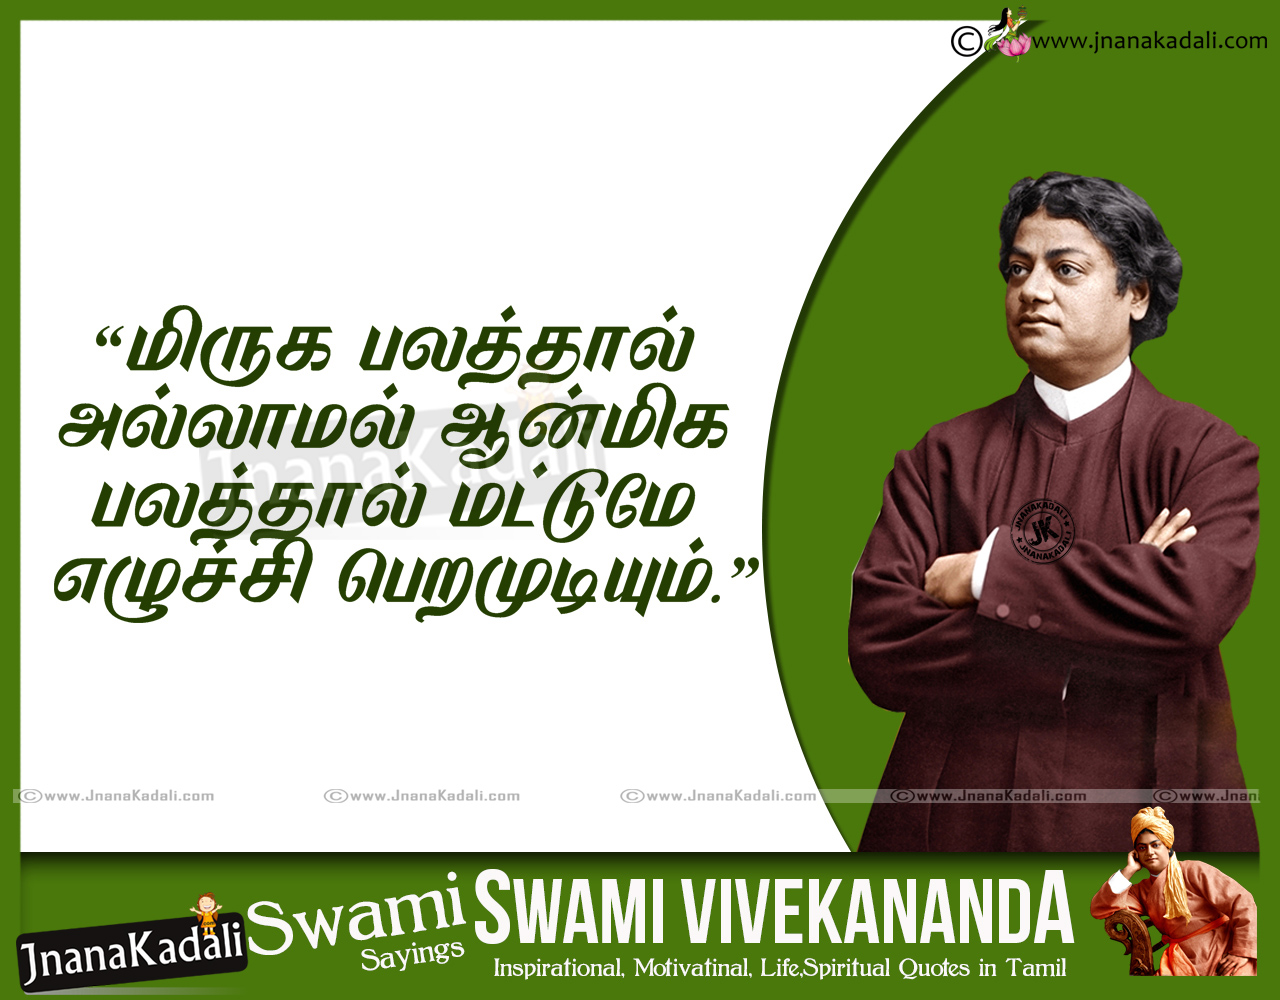 swami vivekananda quotes Swami vivekananda was an indian hindu sage and one of the main disciples the famous yogi ramakrishna he was one of the key figures that introduced the indian vedanta and yoga to the west.